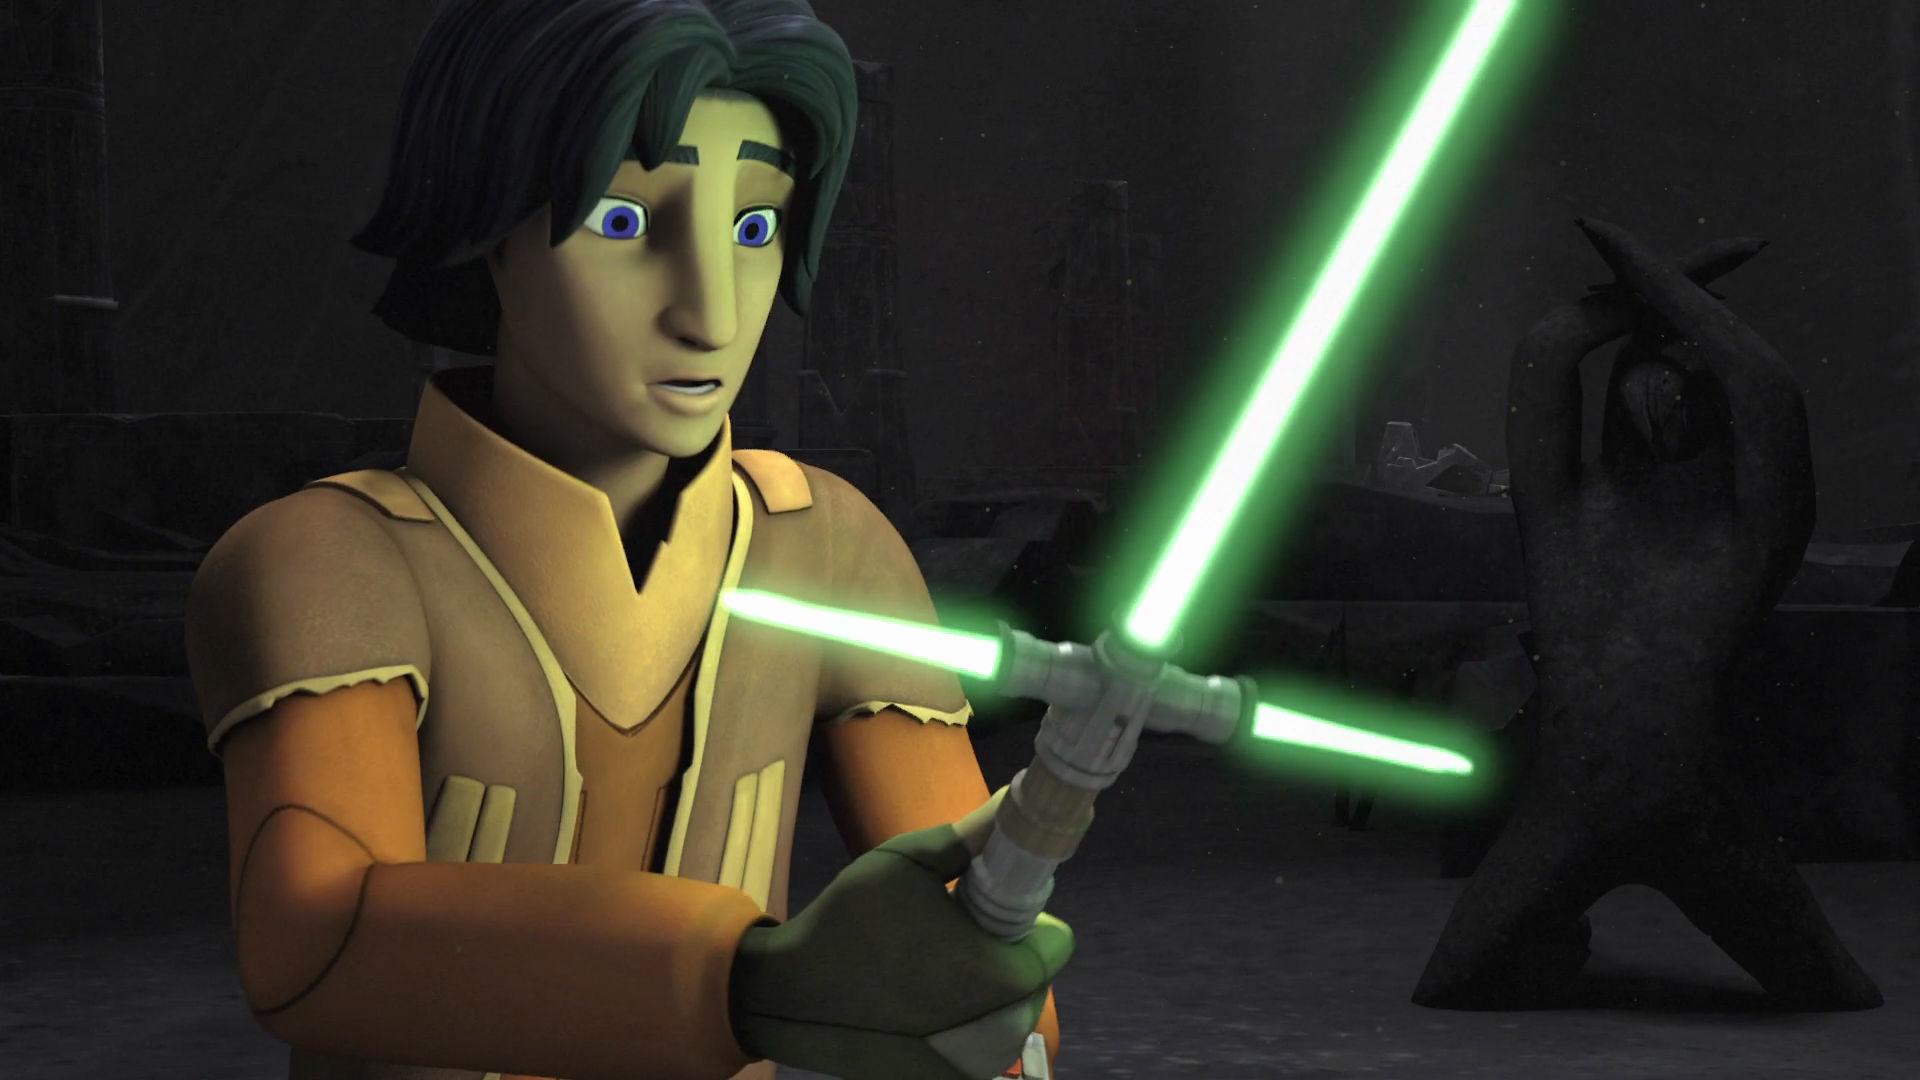 Star Wars Rebels Season Two - Mid-Season Trailer